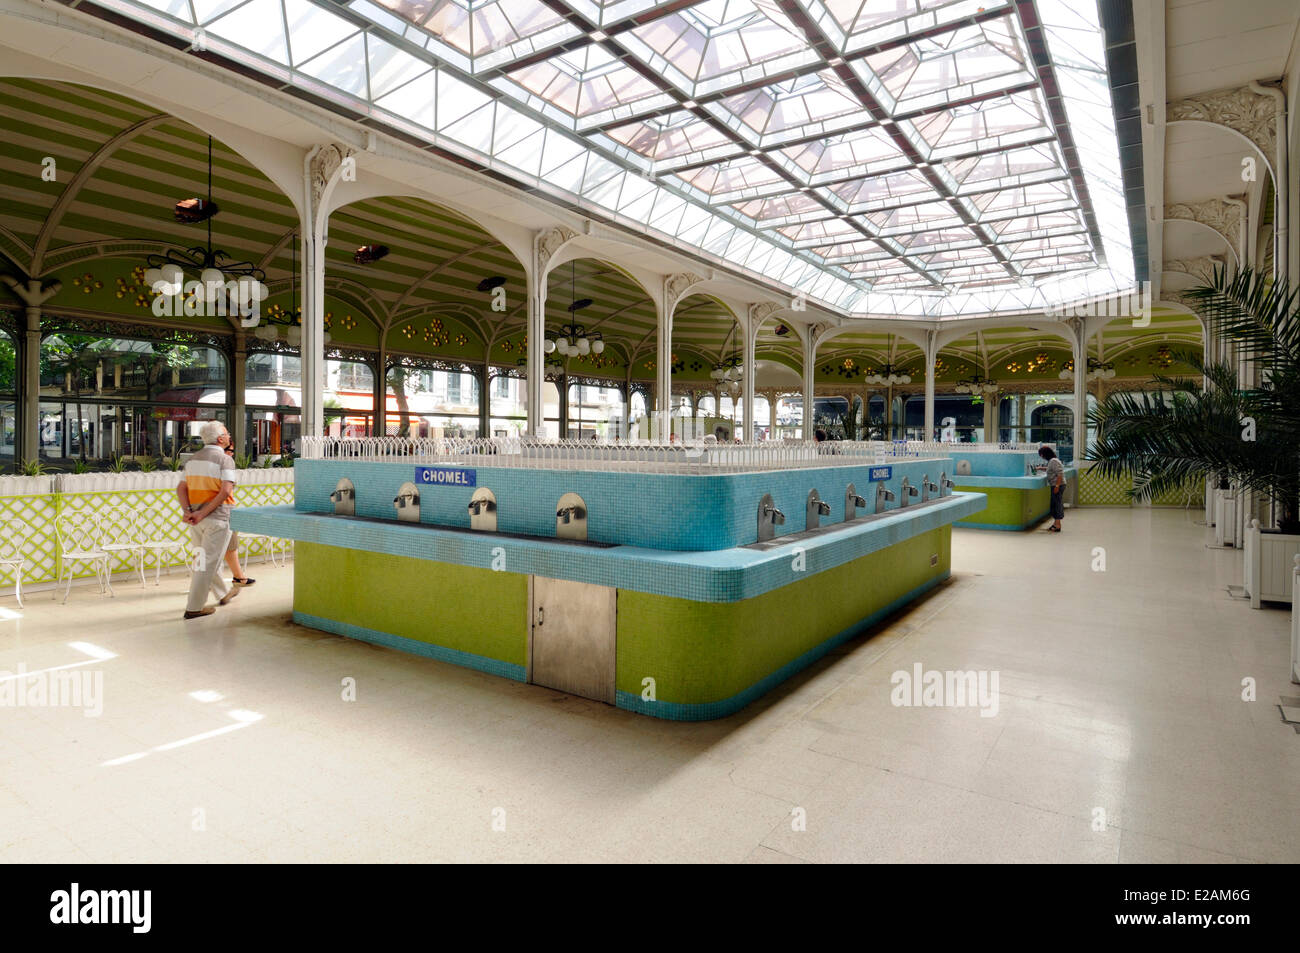 France, Allier, Vichy, Hall of the Sources, faucets for drawing water source - Stock Image